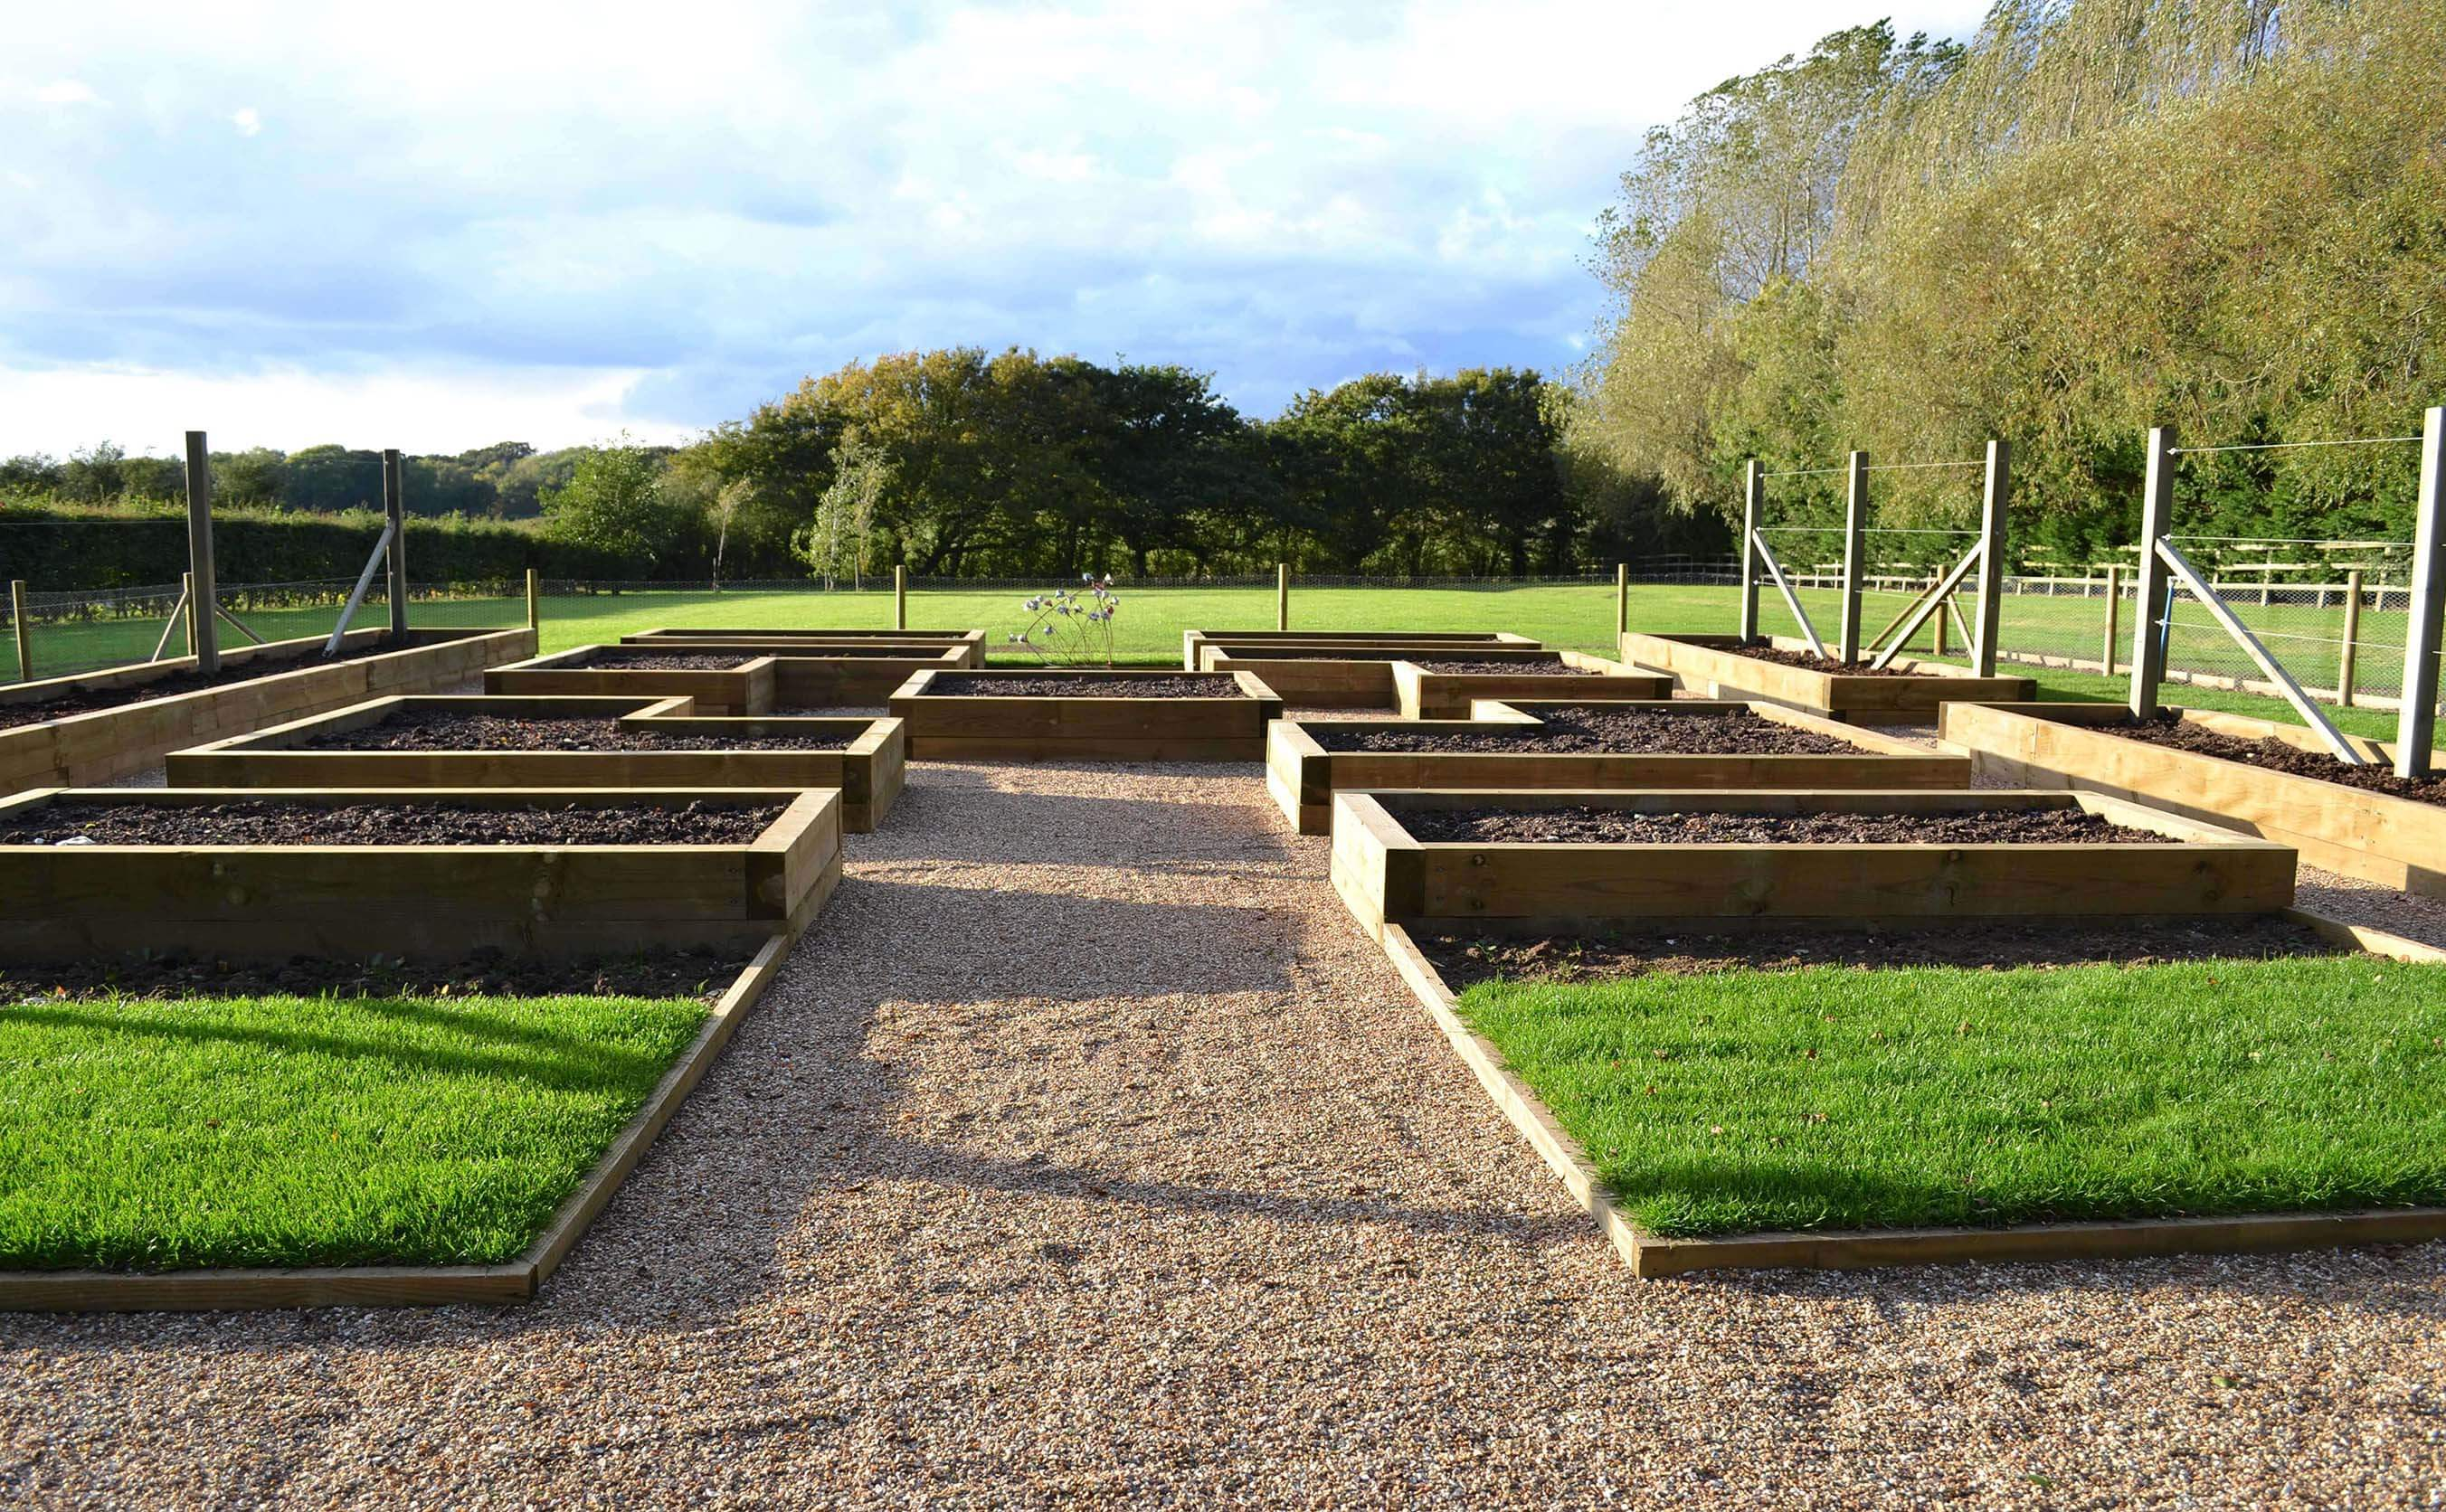 Potager central view showing raised beds created from sleepers